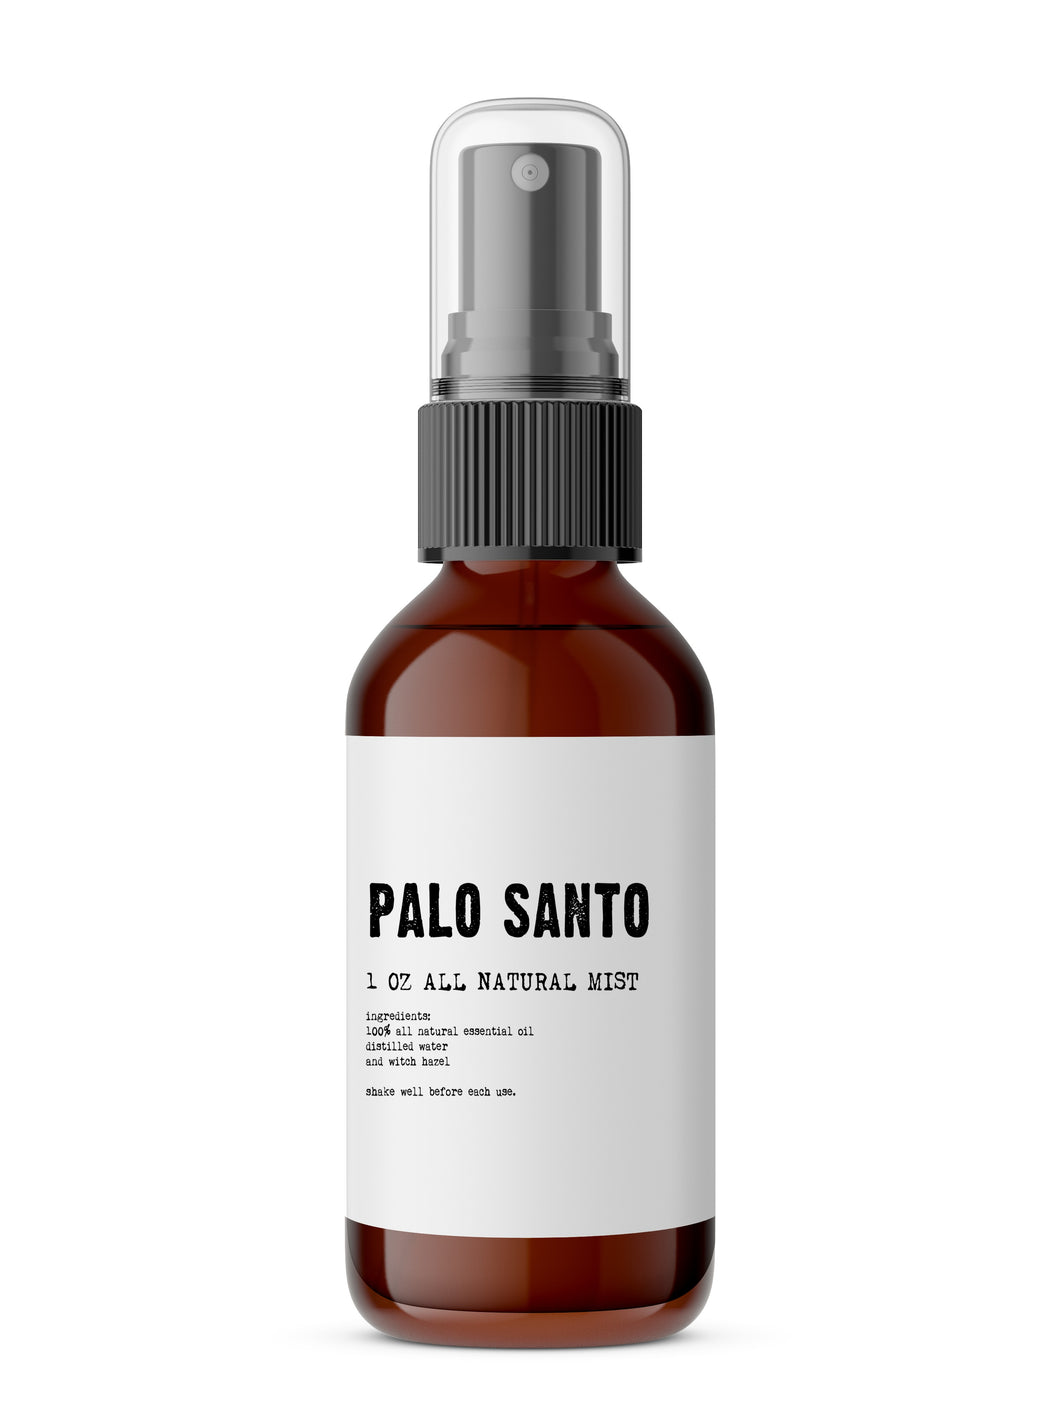 Palo Santo - Meditation & Luxury Body Mist - Made with All Natural Ingredients